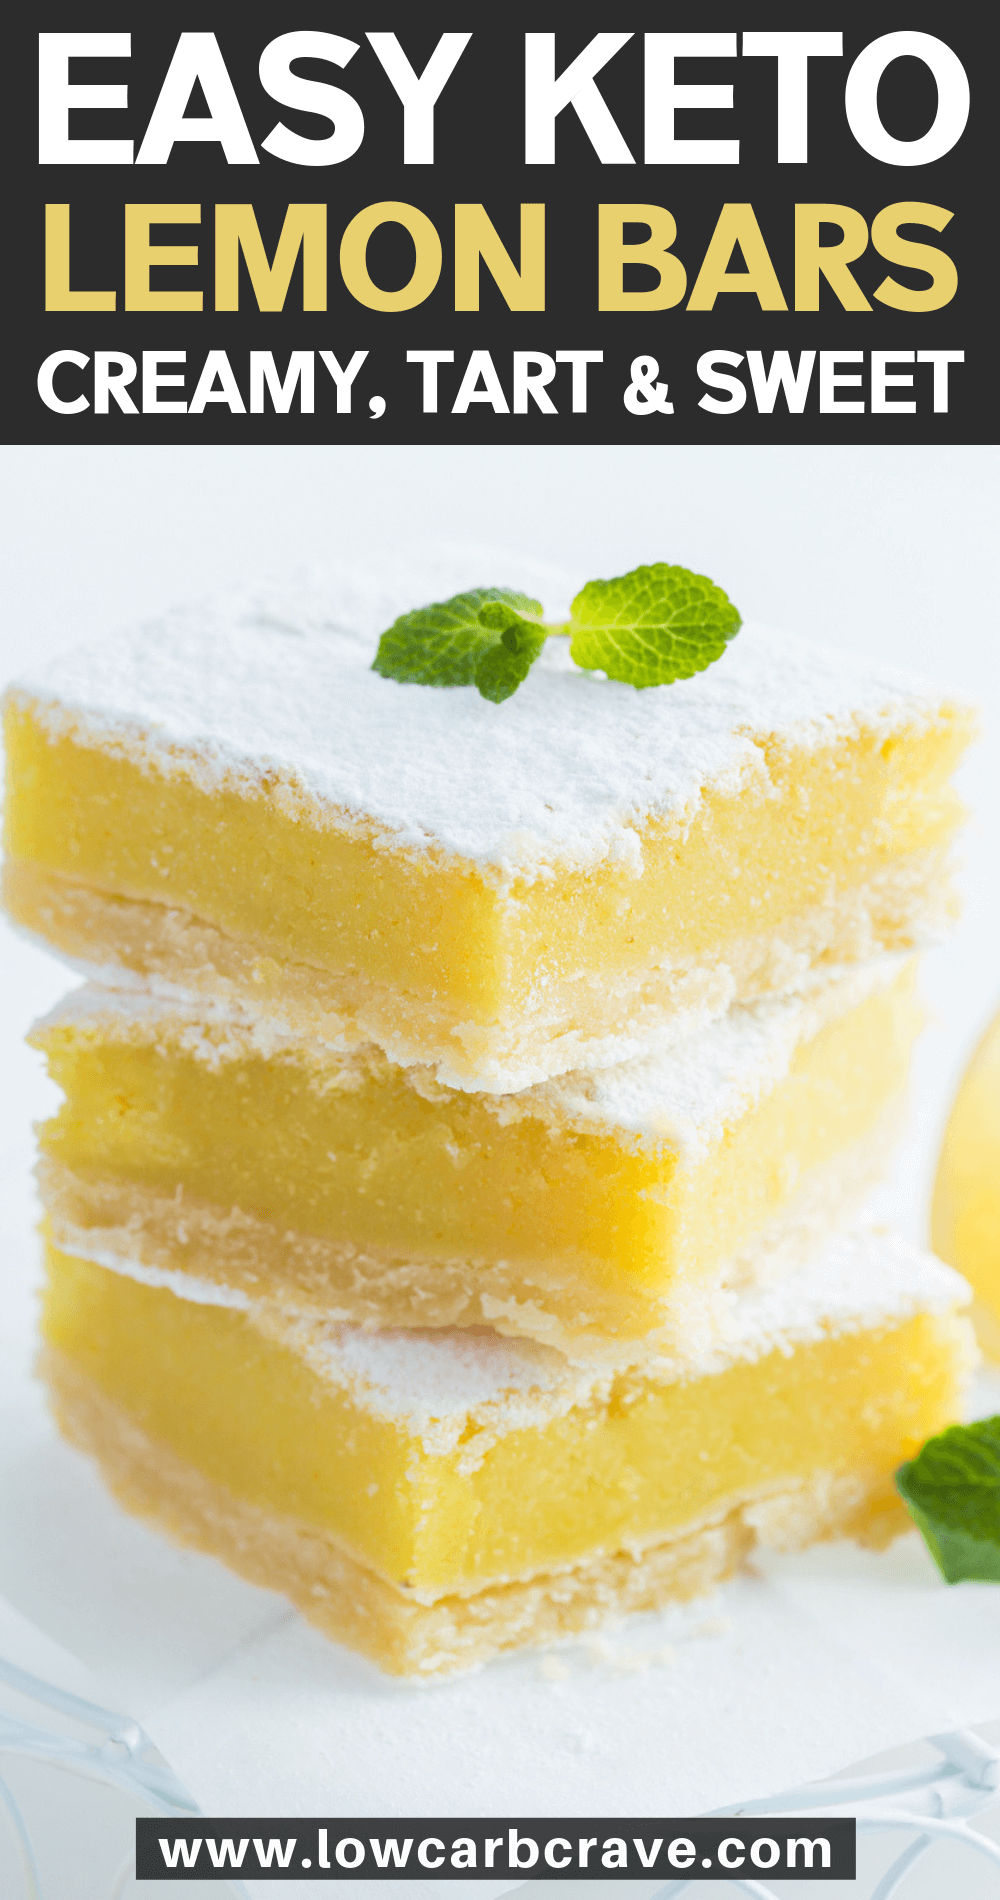 Easy Keto Lemon Bars (Low Carb & Sugar-Free)